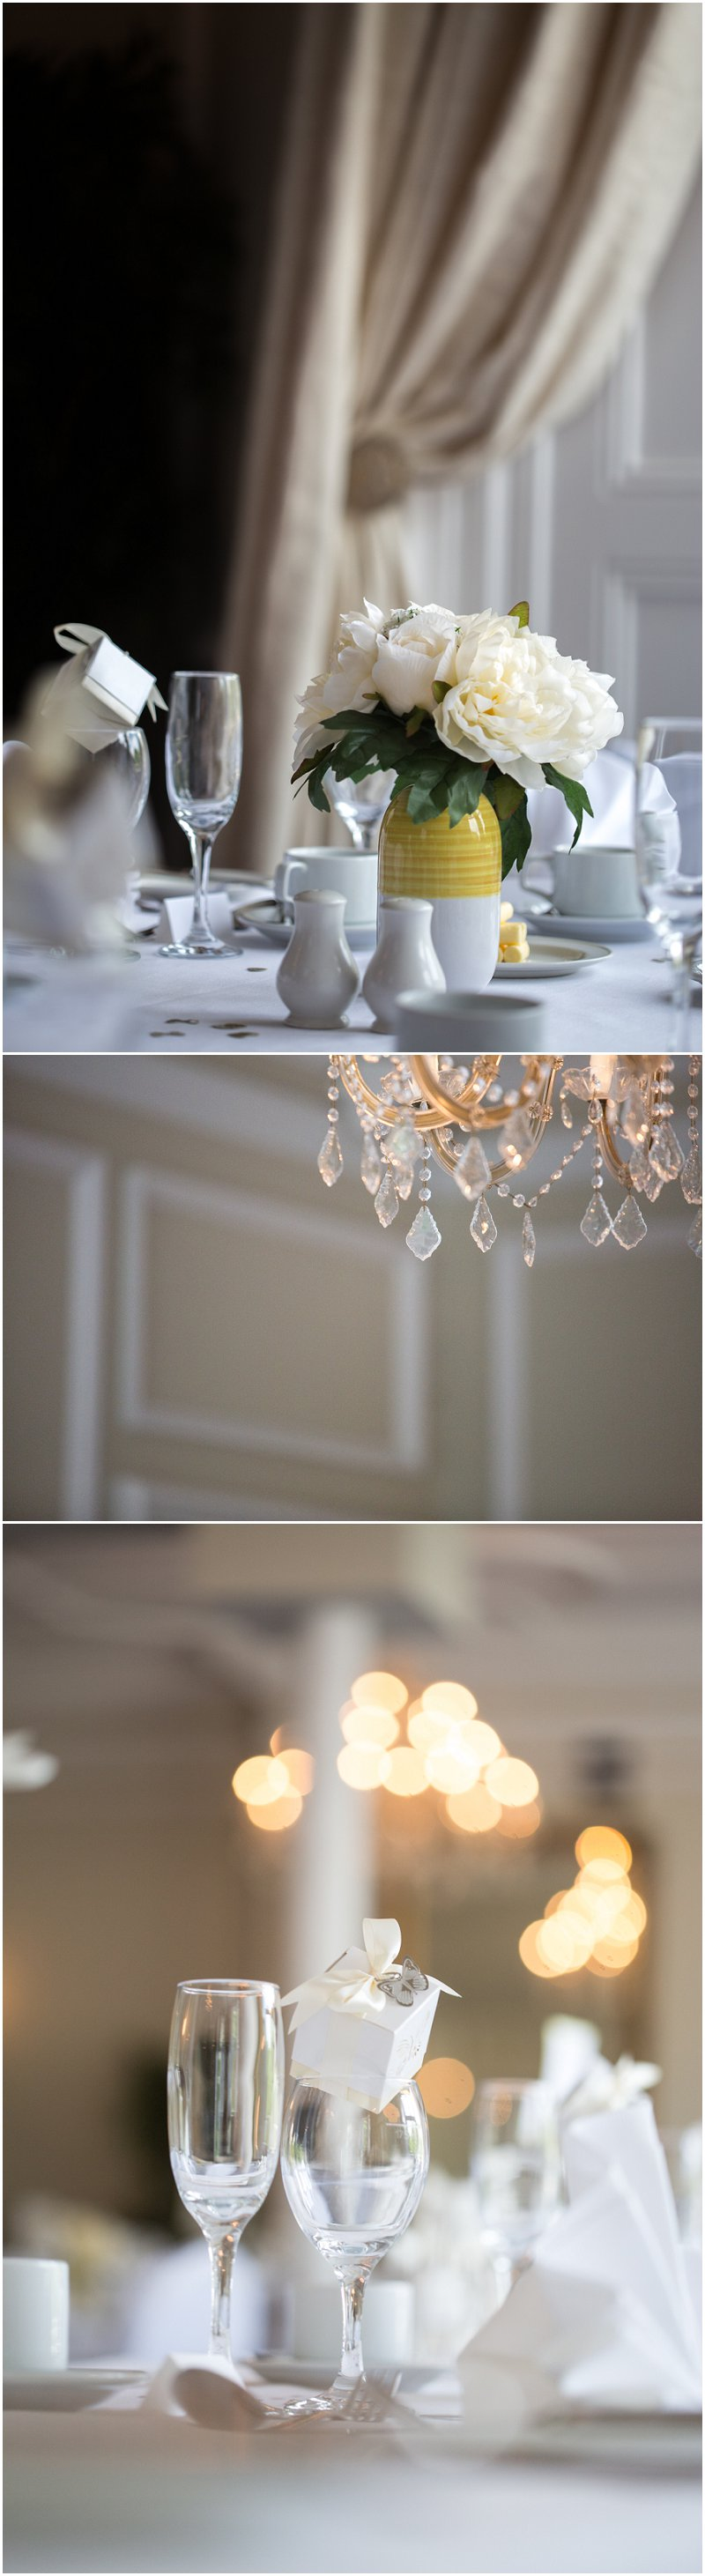 Beautiful Wedding Details at Ashfield House Wedding Photographer